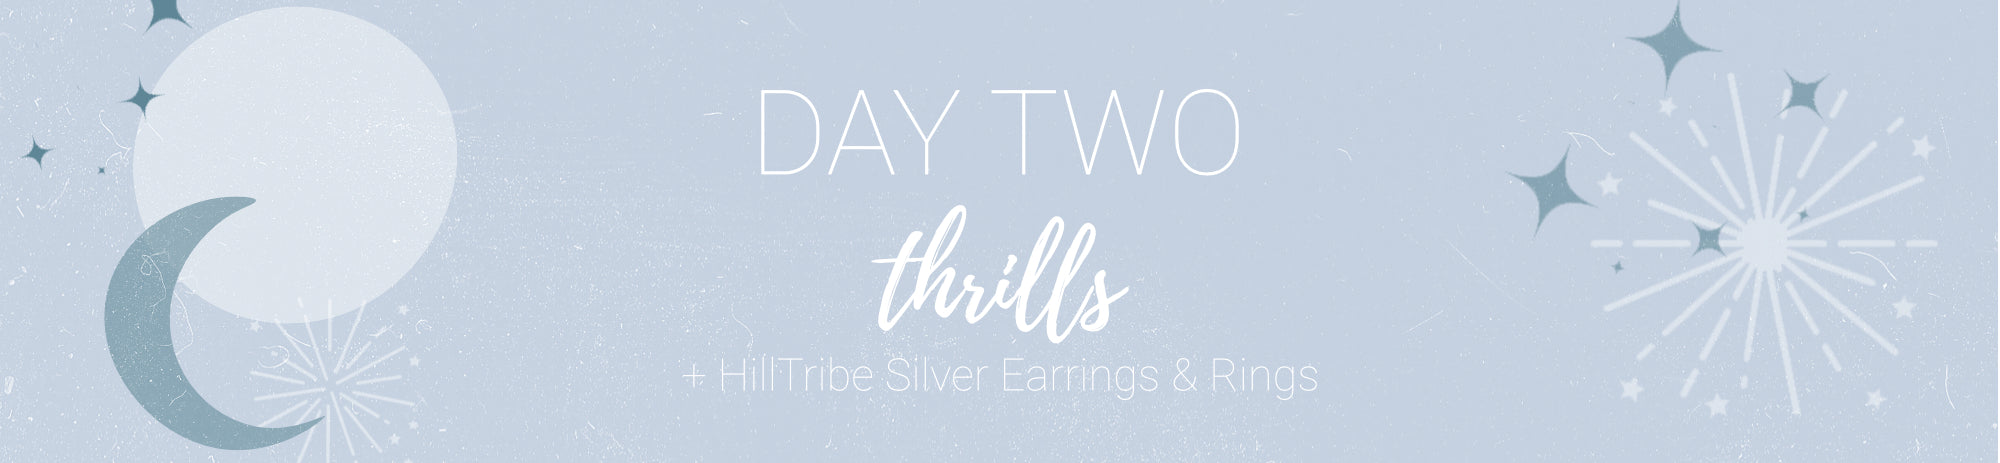 20% off Thrills + Hilltribe Silver Rings & Earrings Use Code: CHEER2